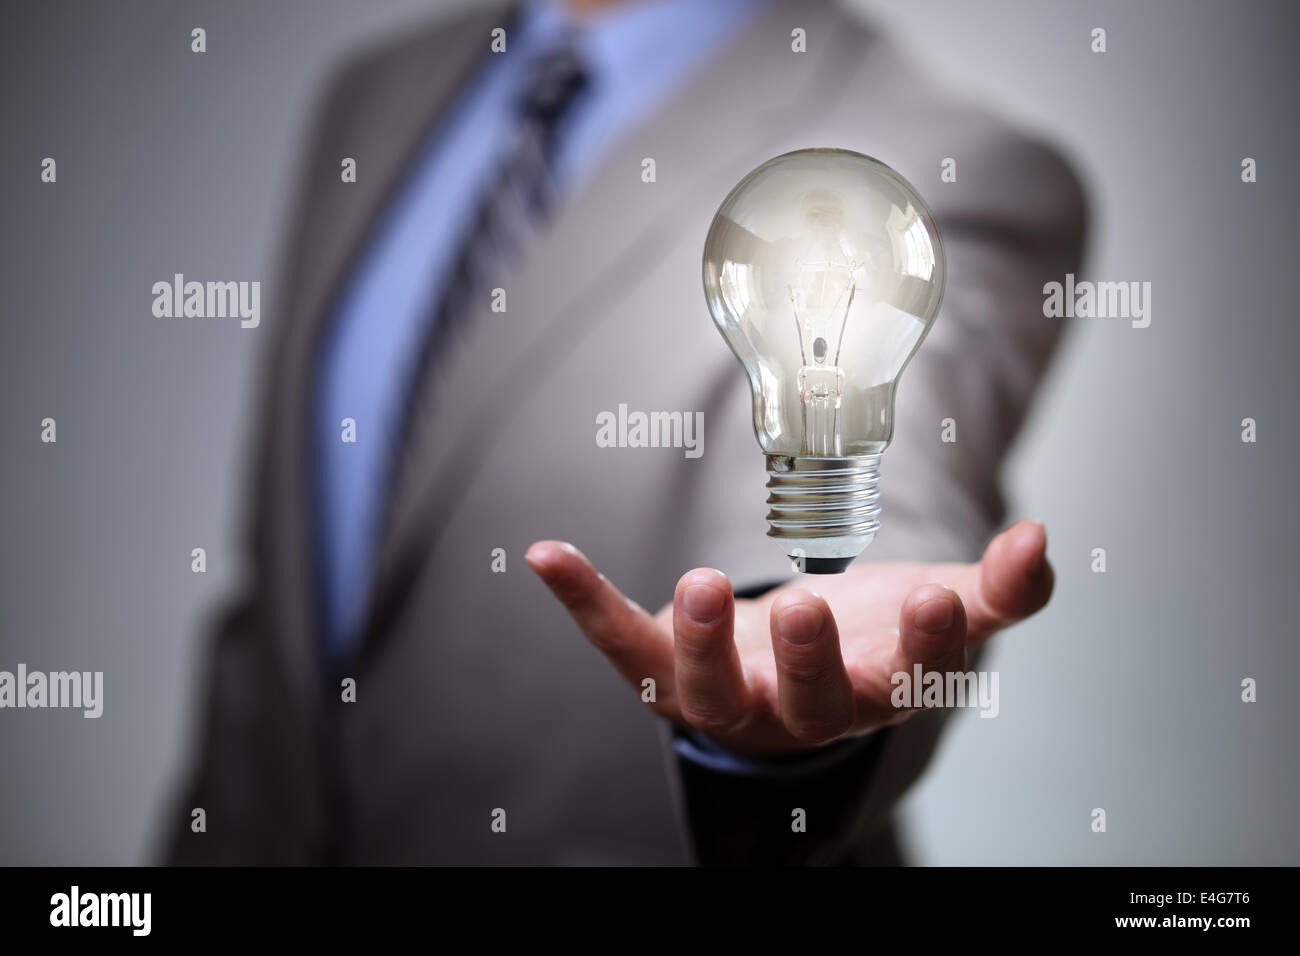 Business idea - Stock Image